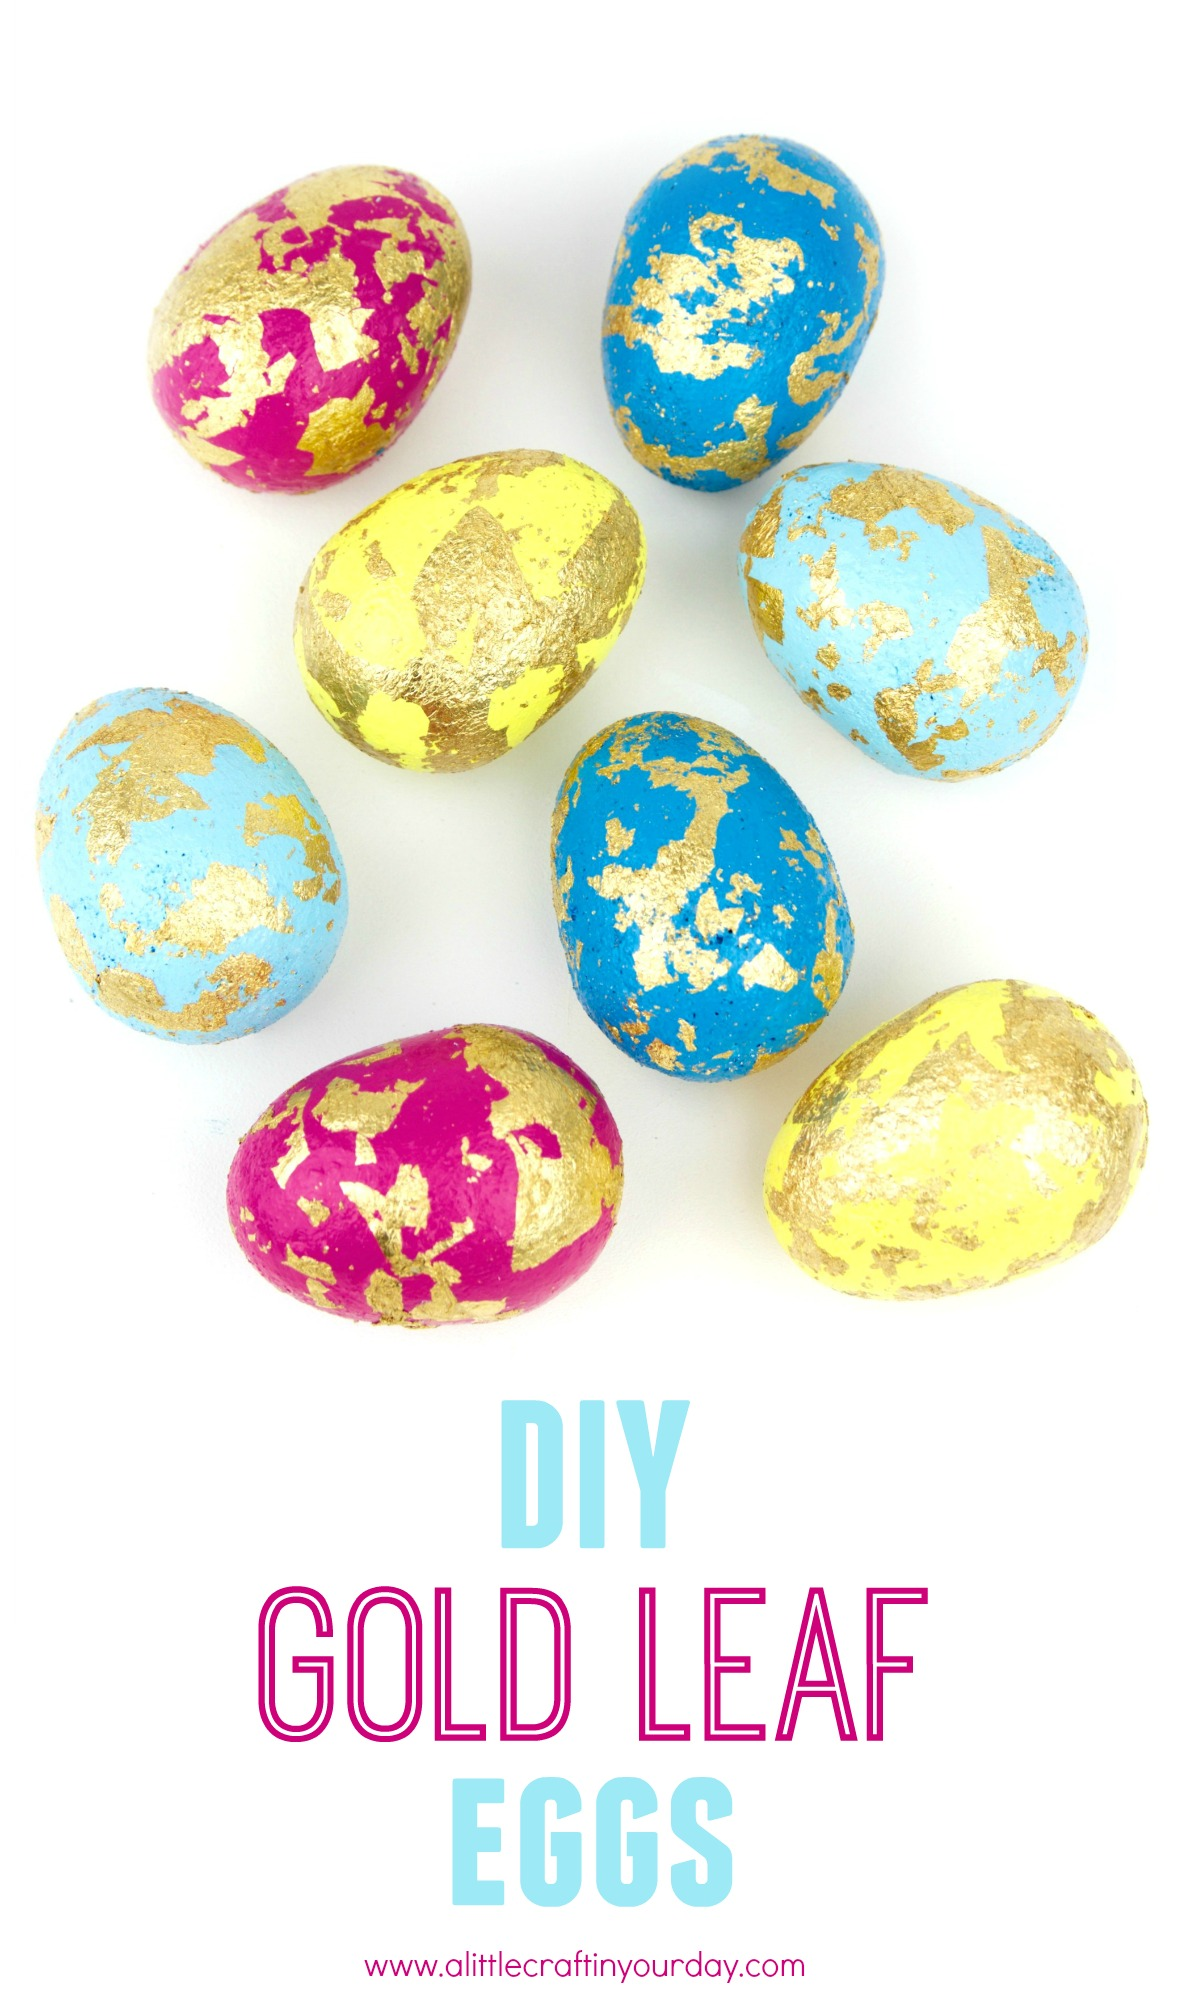 Diy Gold Leaf Easter Eggs A Little Craft In Your Daya